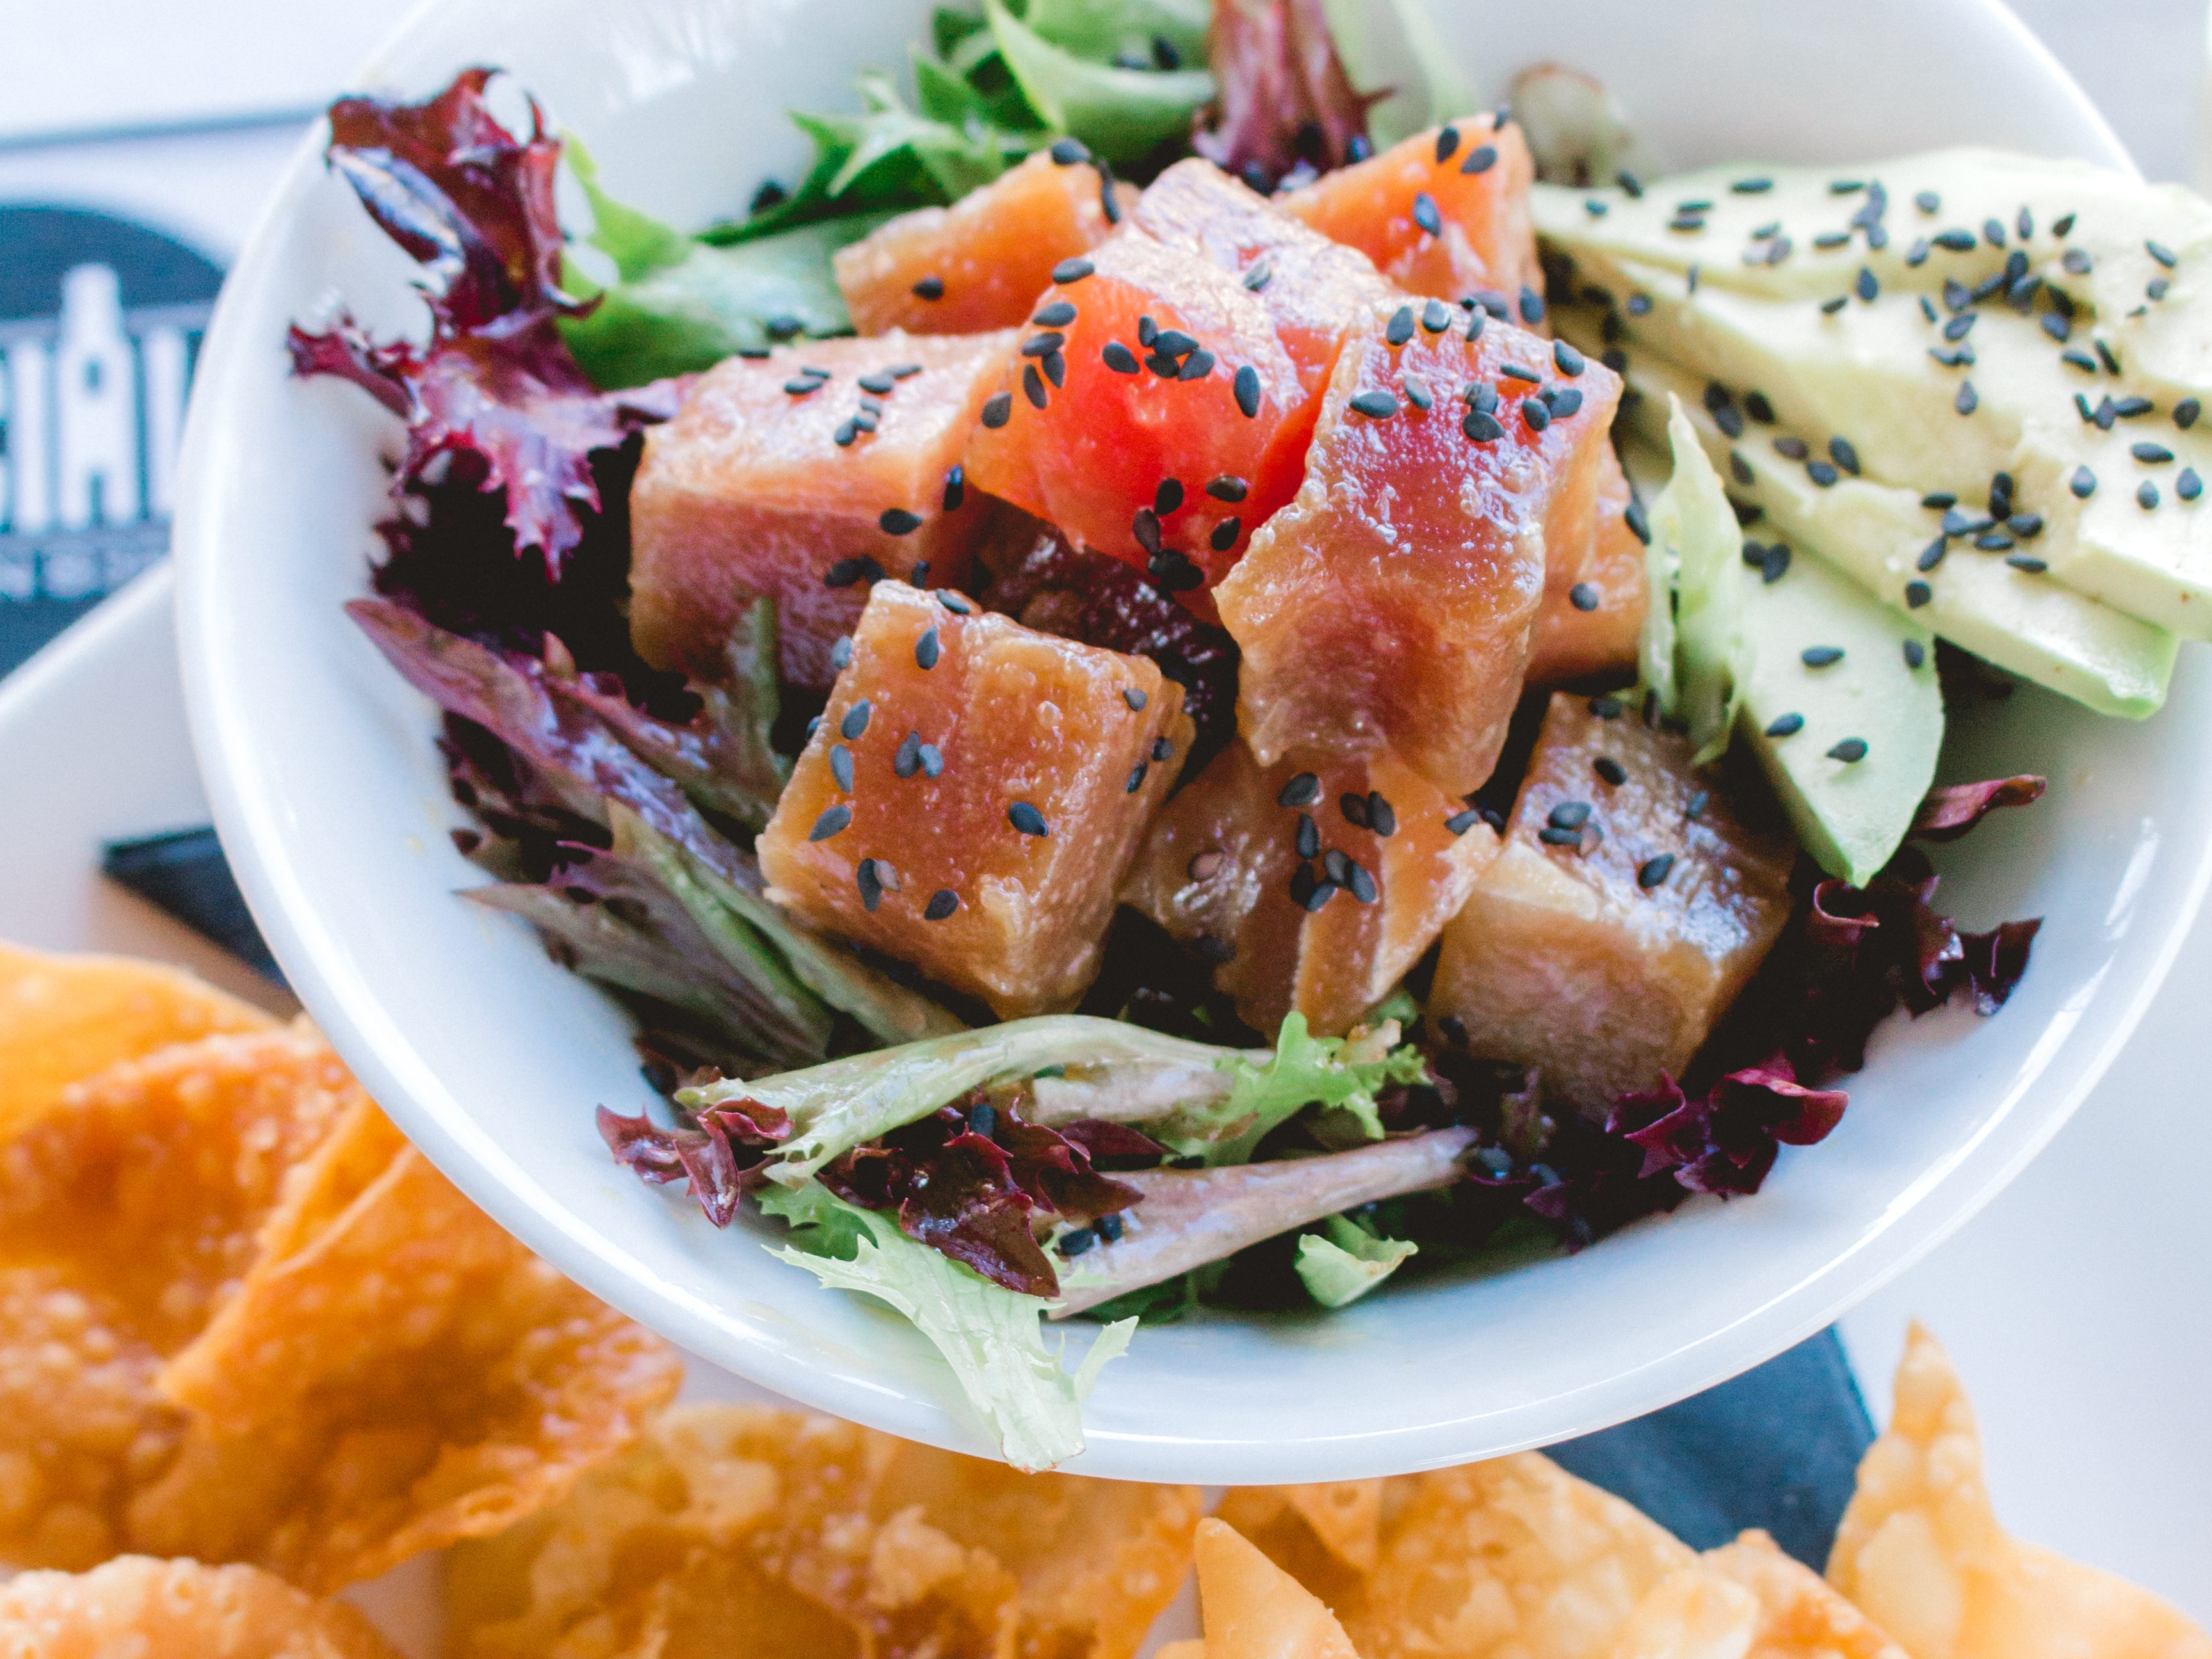 The ahi poke bowl at the Social on 83rd.